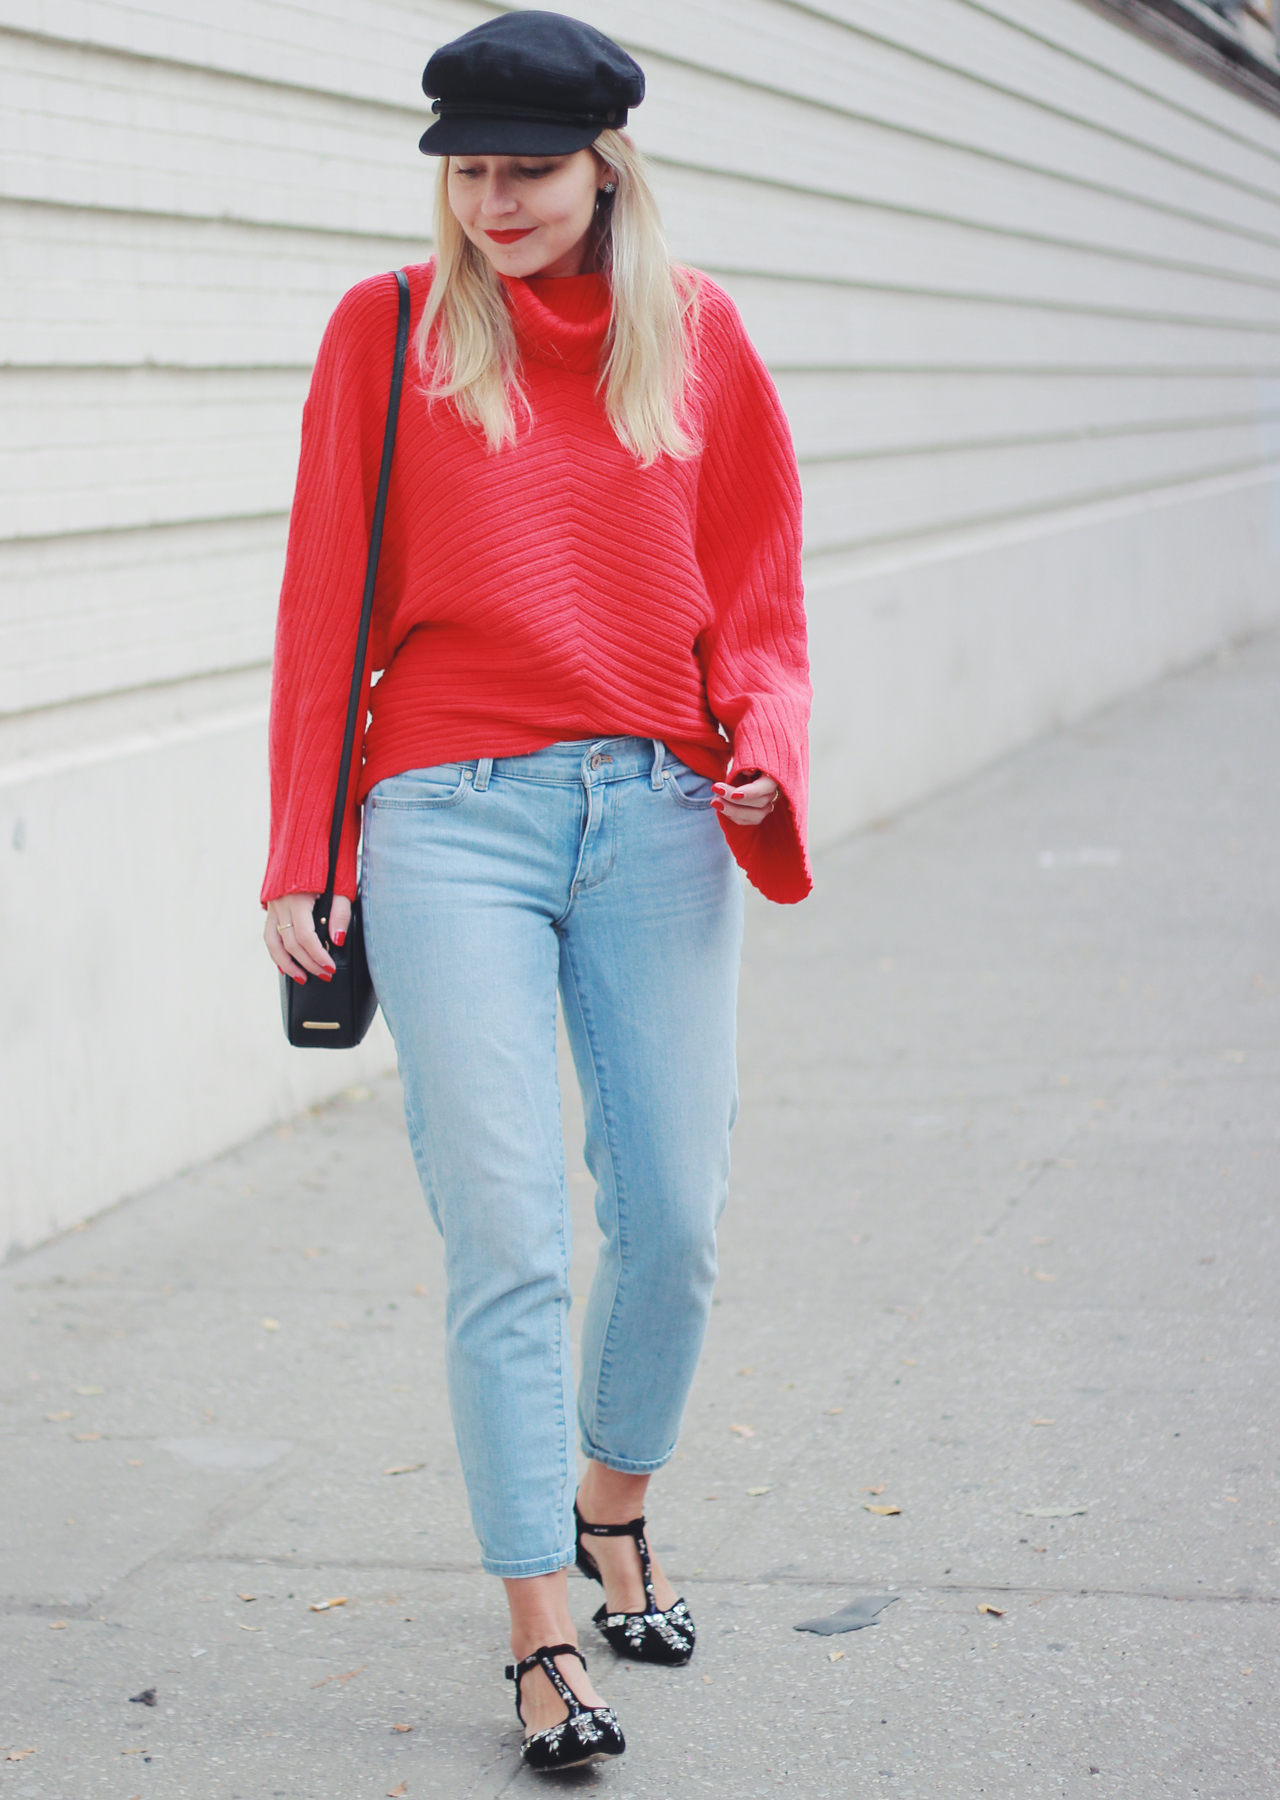 The Steele Maiden: Casual Holiday Outfit Ideas - red sweater and boyfriend jeans